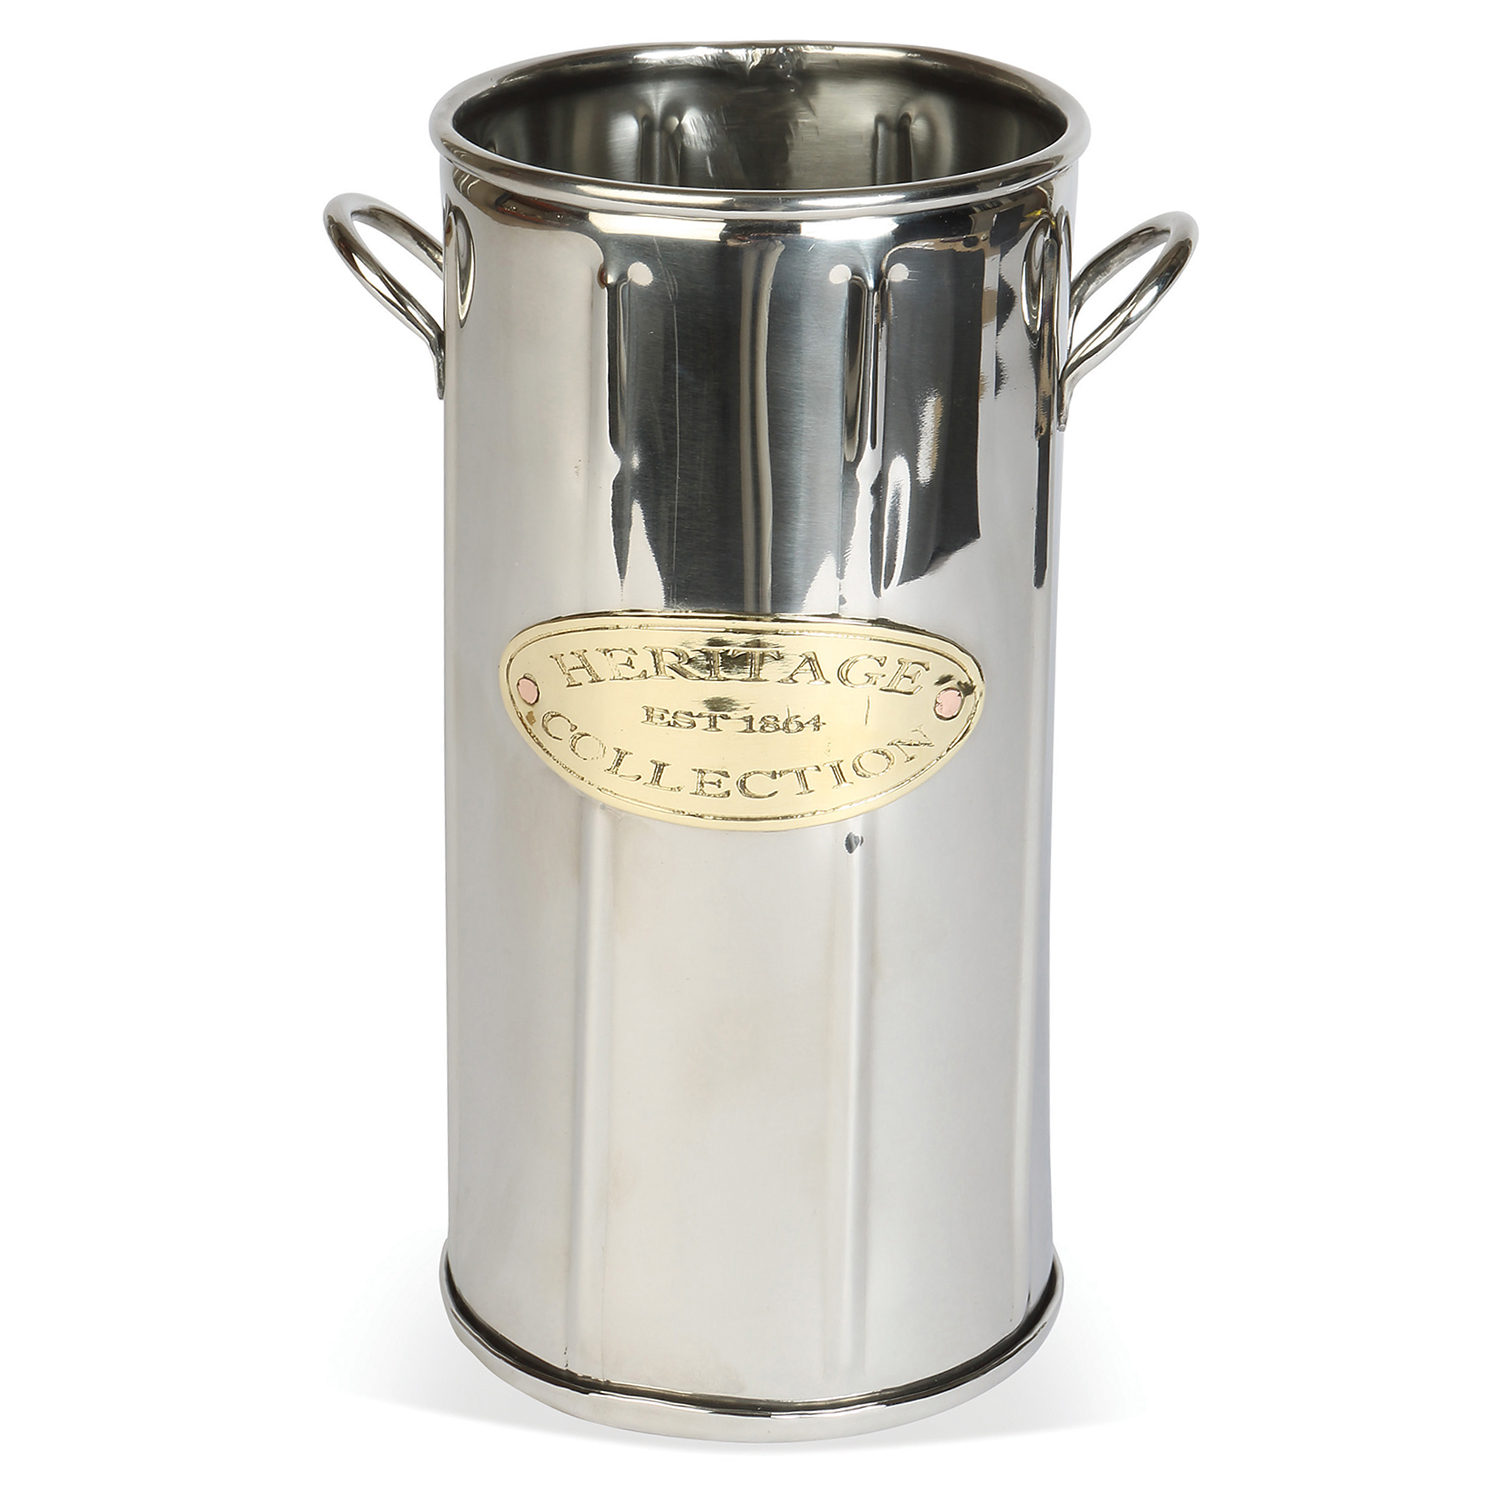 Culinary Concepts – Heritage Tall Wine Bottle Holder in Presentation Gift Box